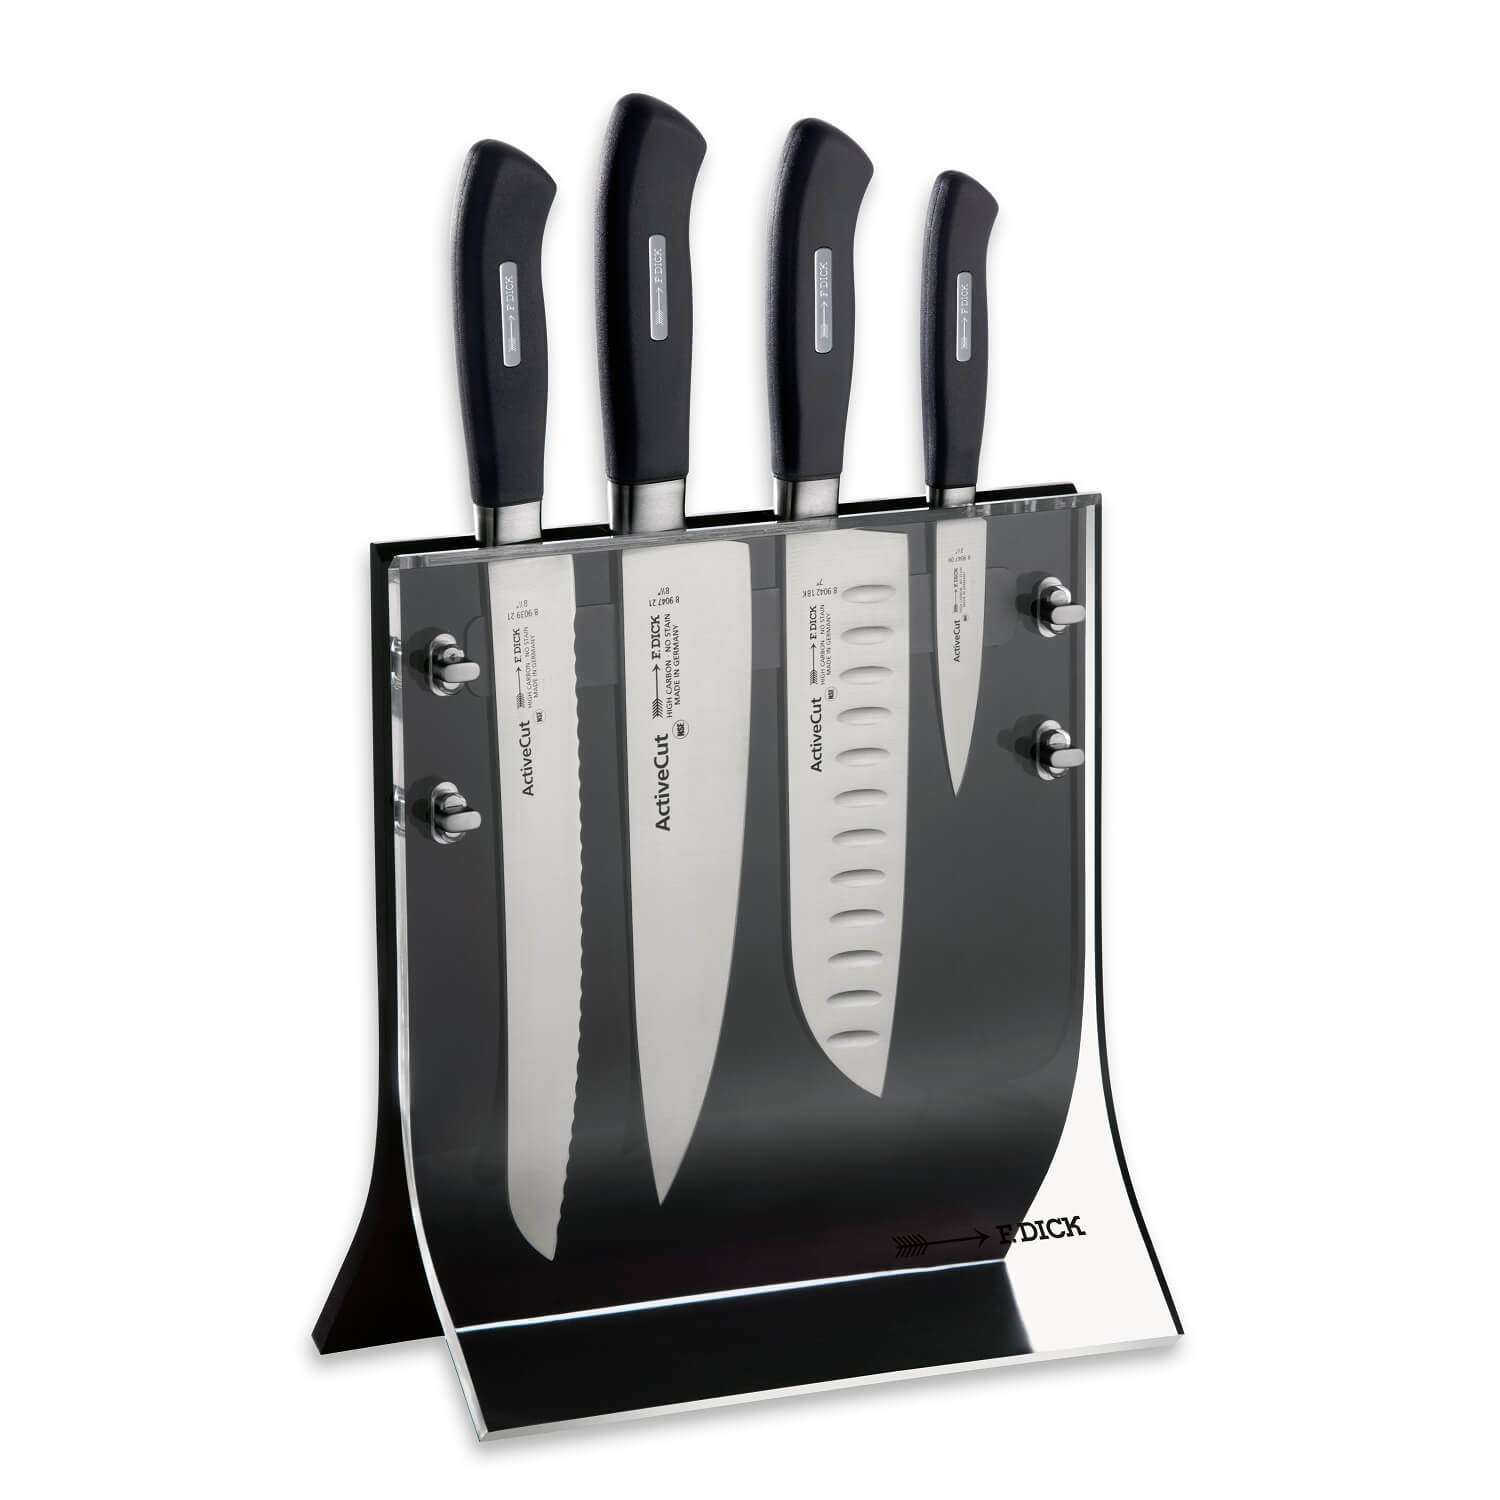 F DICK ActiveCut Knife block 4Knives - House of Knives